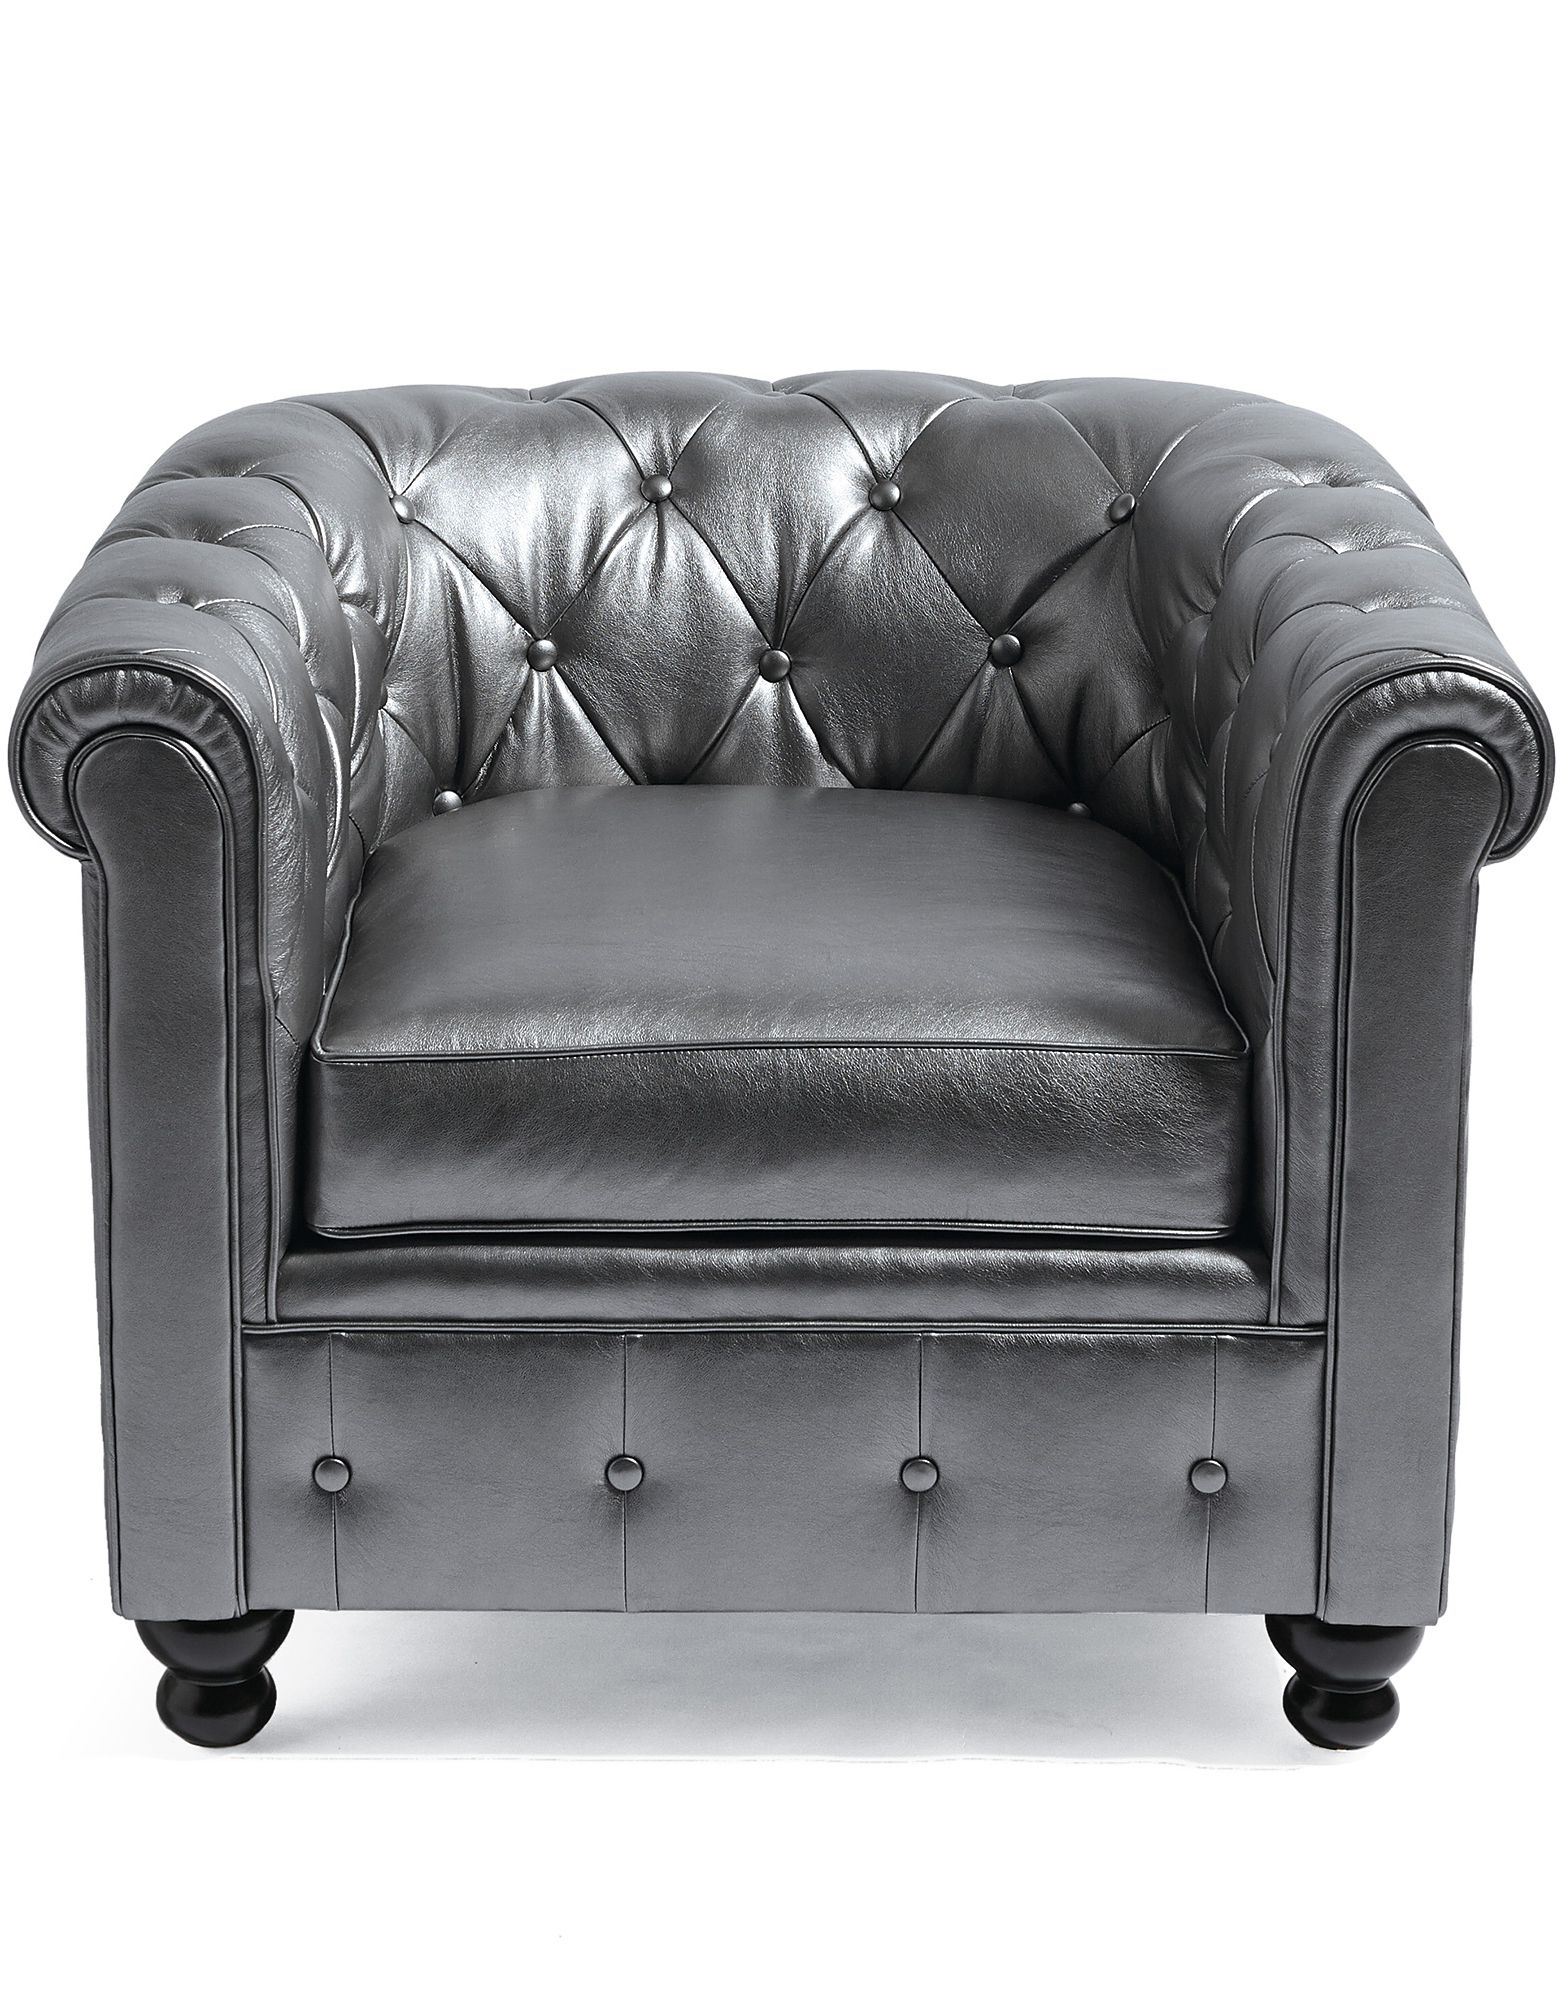 Harrison Chair In Pewter! | Interior Design | Pinterest | Pewter Within Grandin Leather Sofa Chairs (Image 16 of 25)